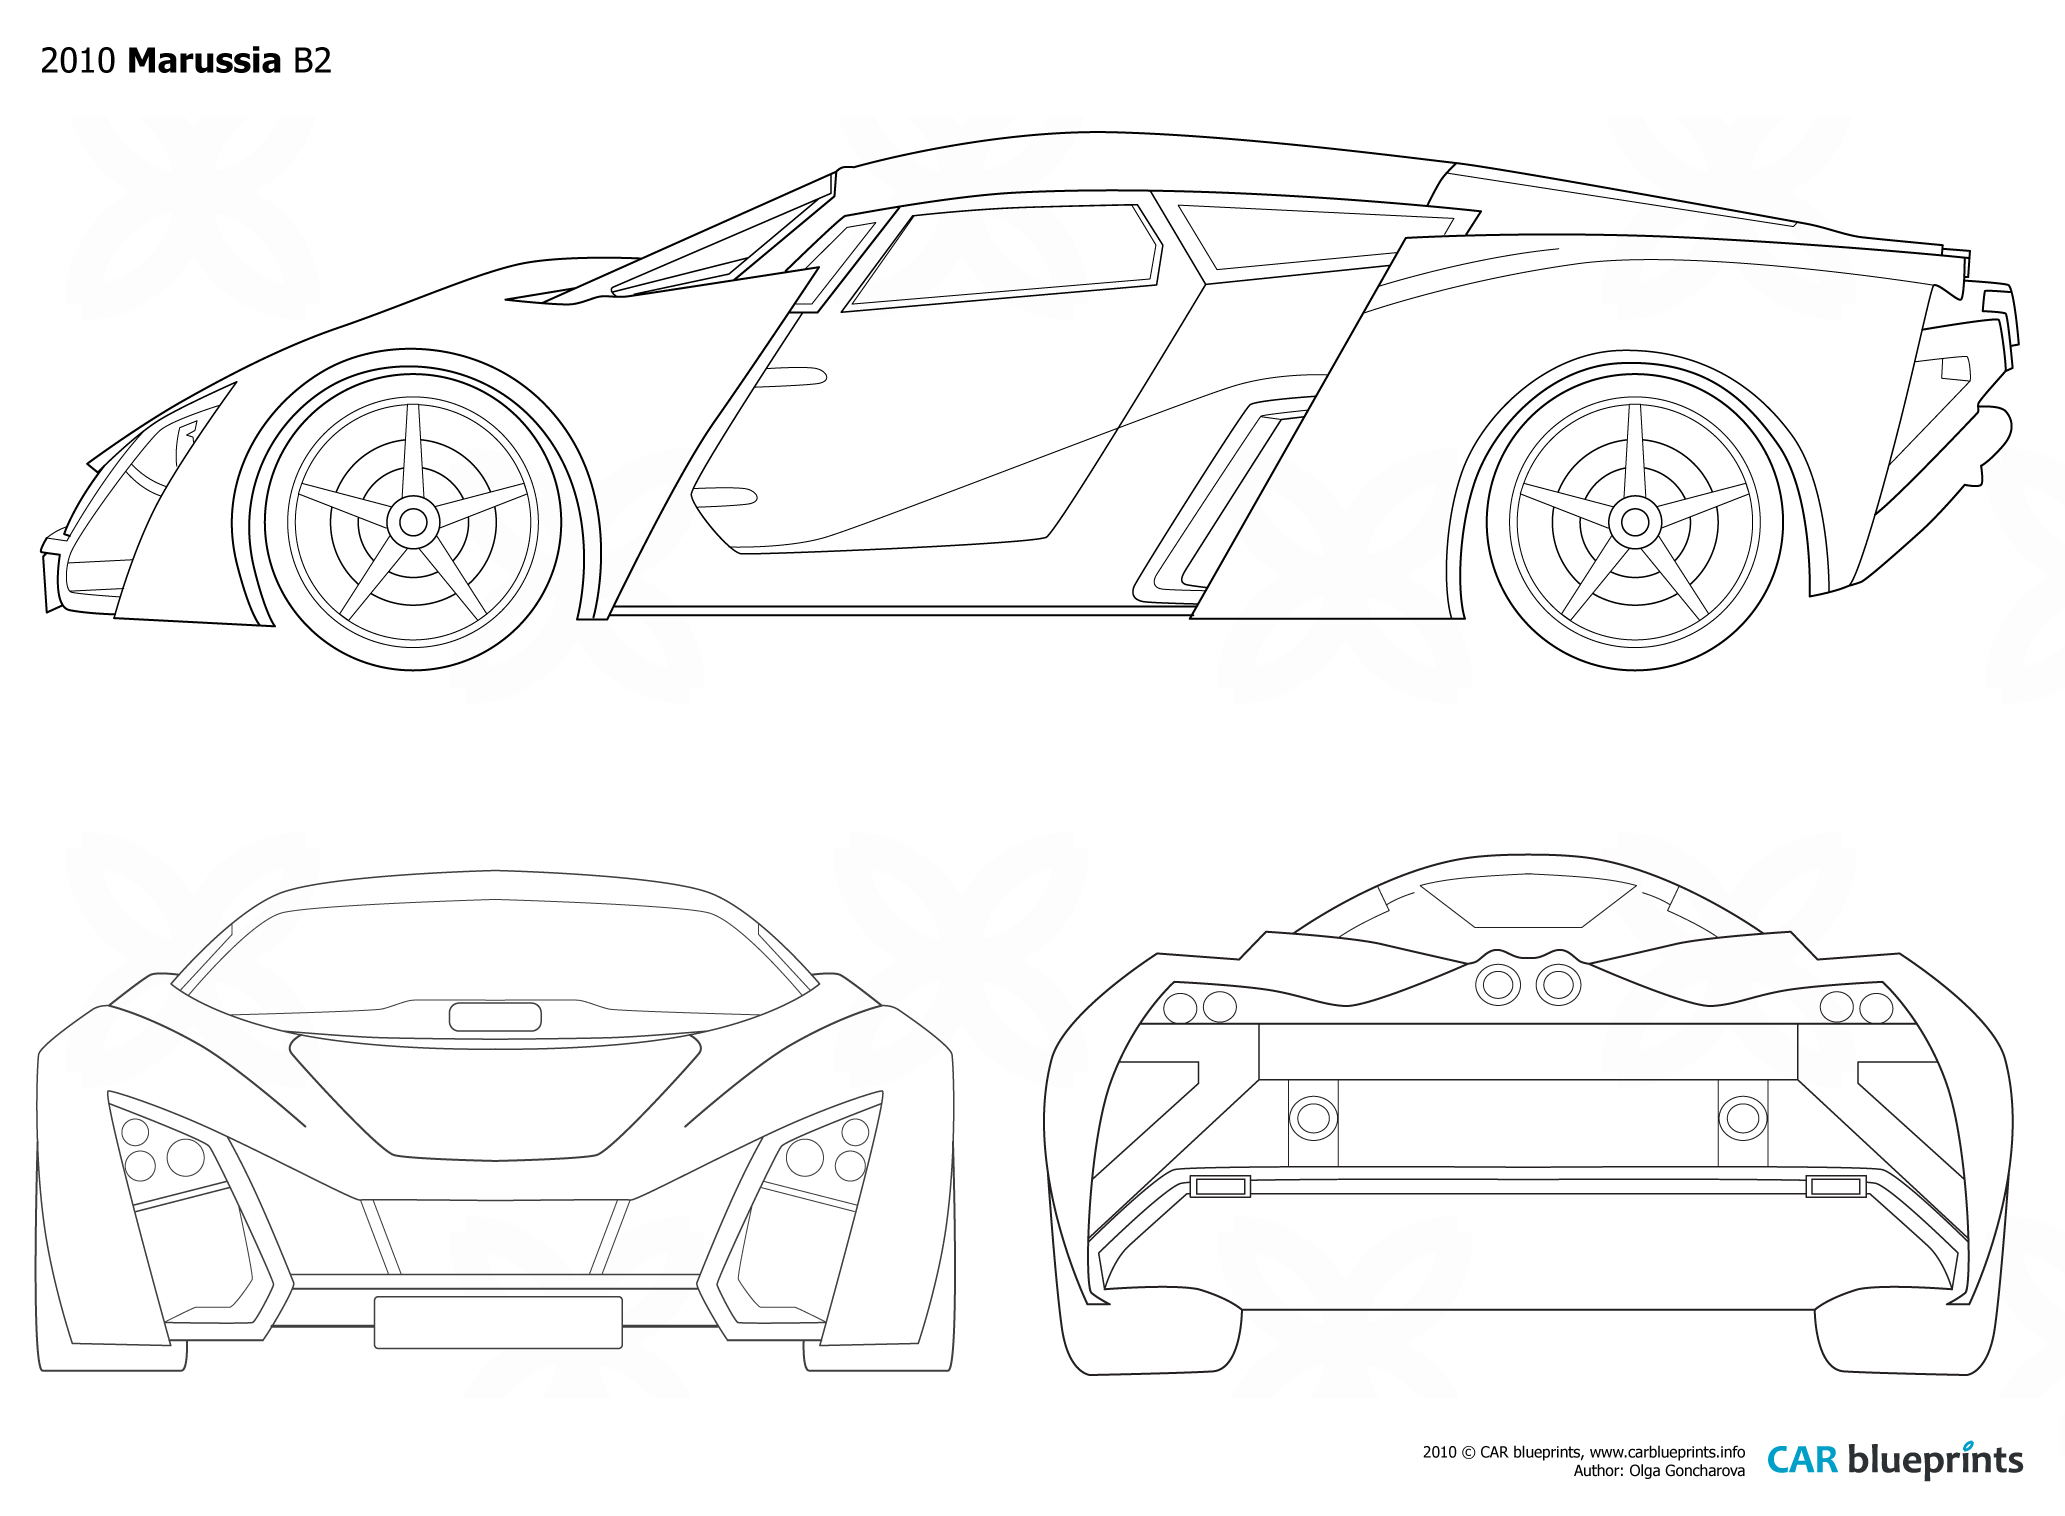 2010 marussia b2 coupe blueprints free